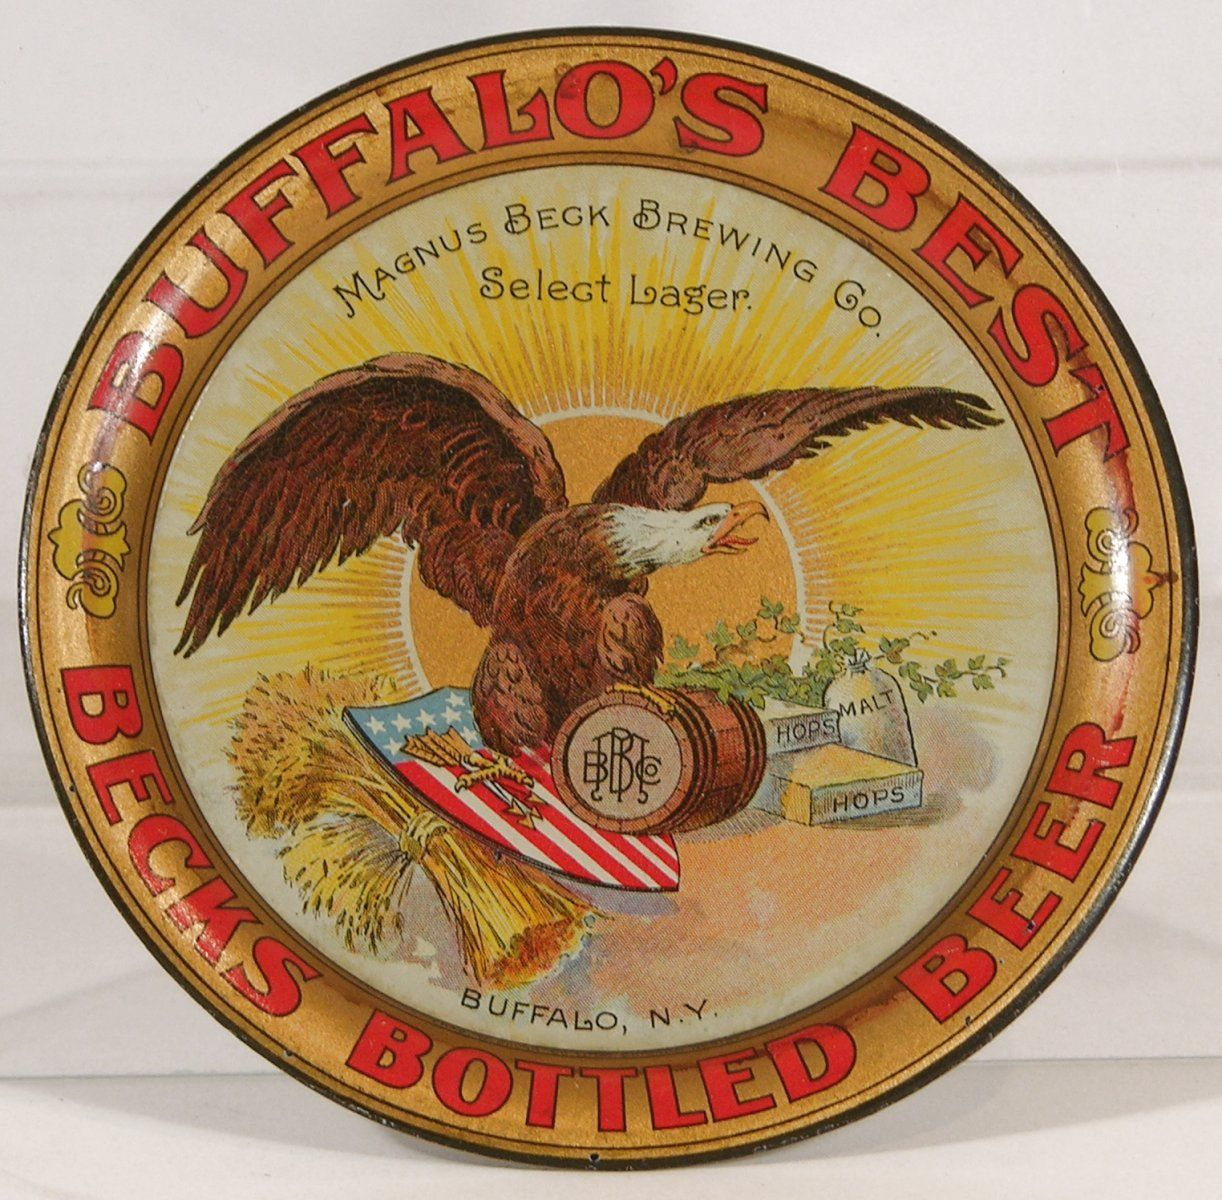 Magnus Beck Brewing Beer Tip Tray, Buffalo, NY. Circa 1905